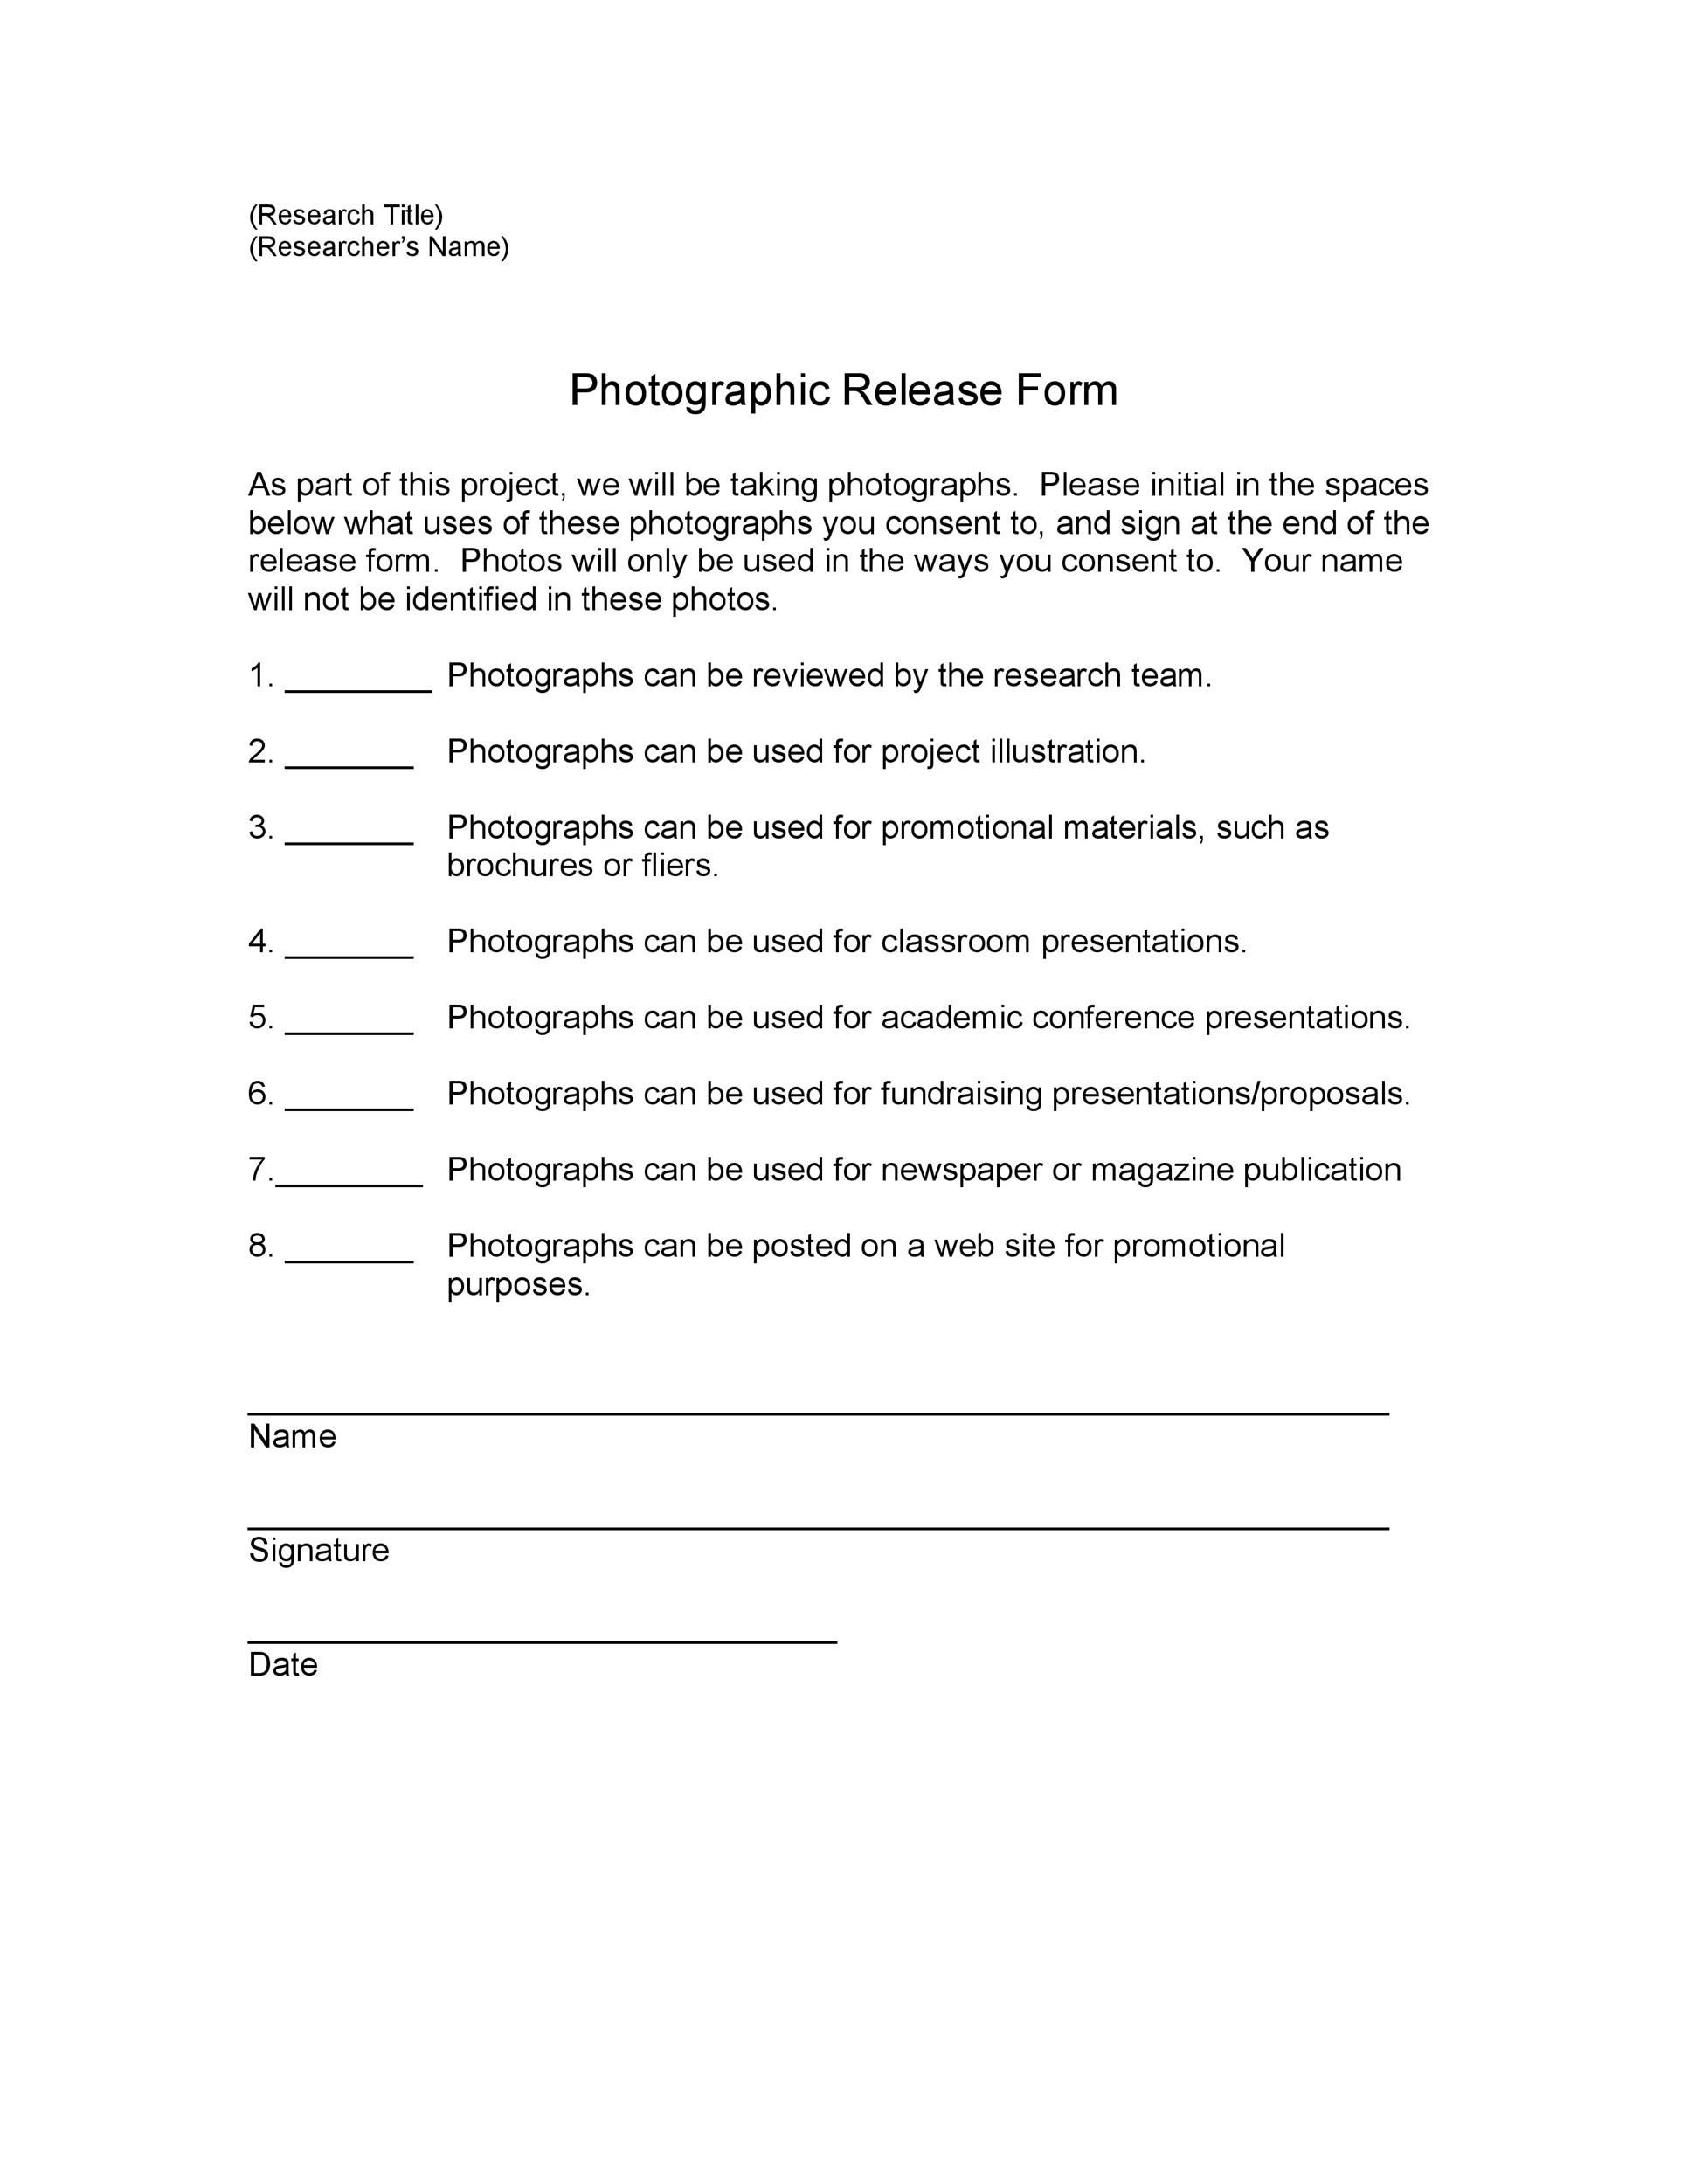 007 Simple Photography Release Form Template Highest Clarity  Image Australia CanadaFull